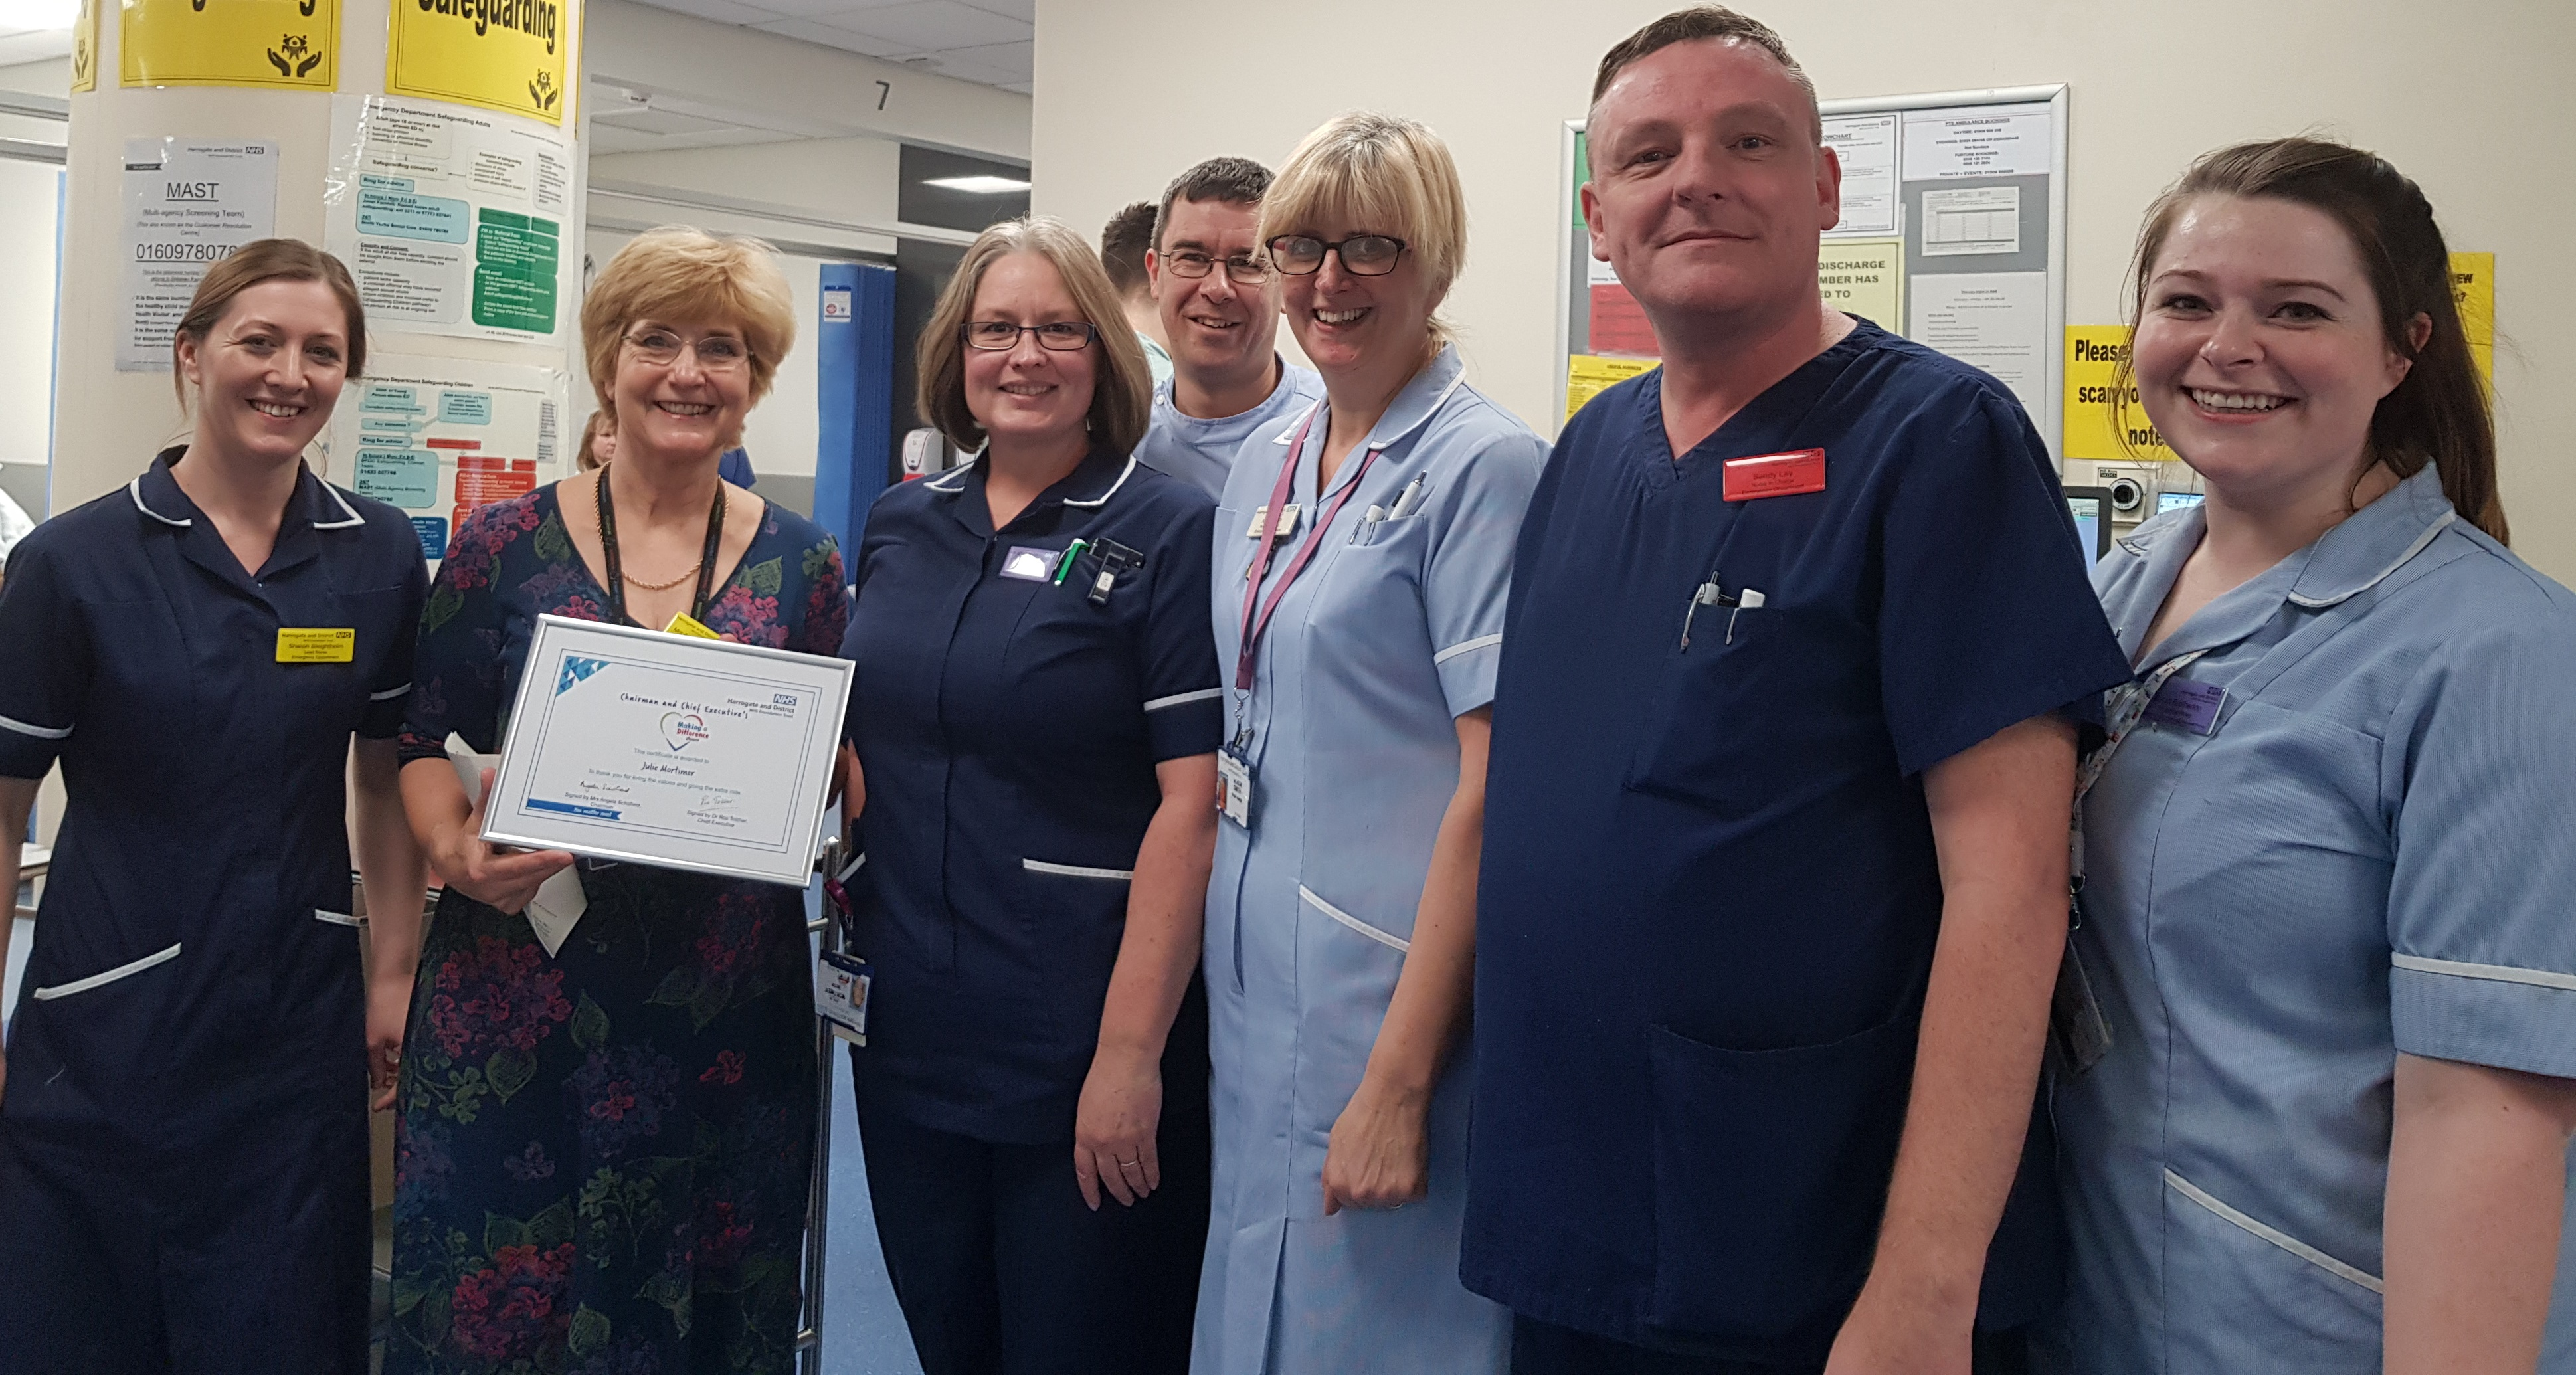 Our Making a Difference winners - Harrogate and District NHS